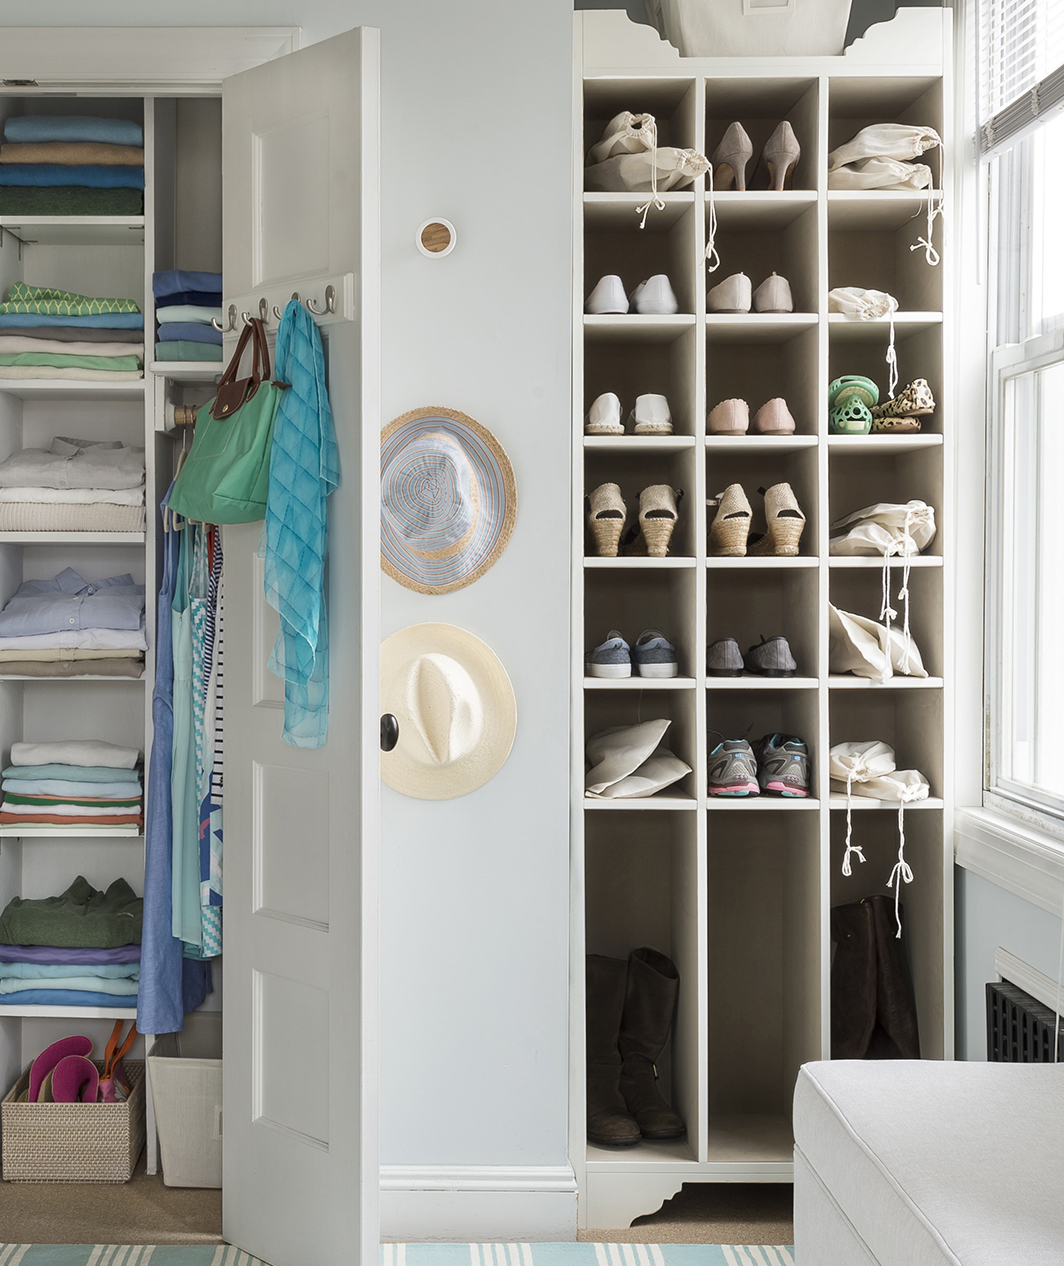 Large shoe rack/closet